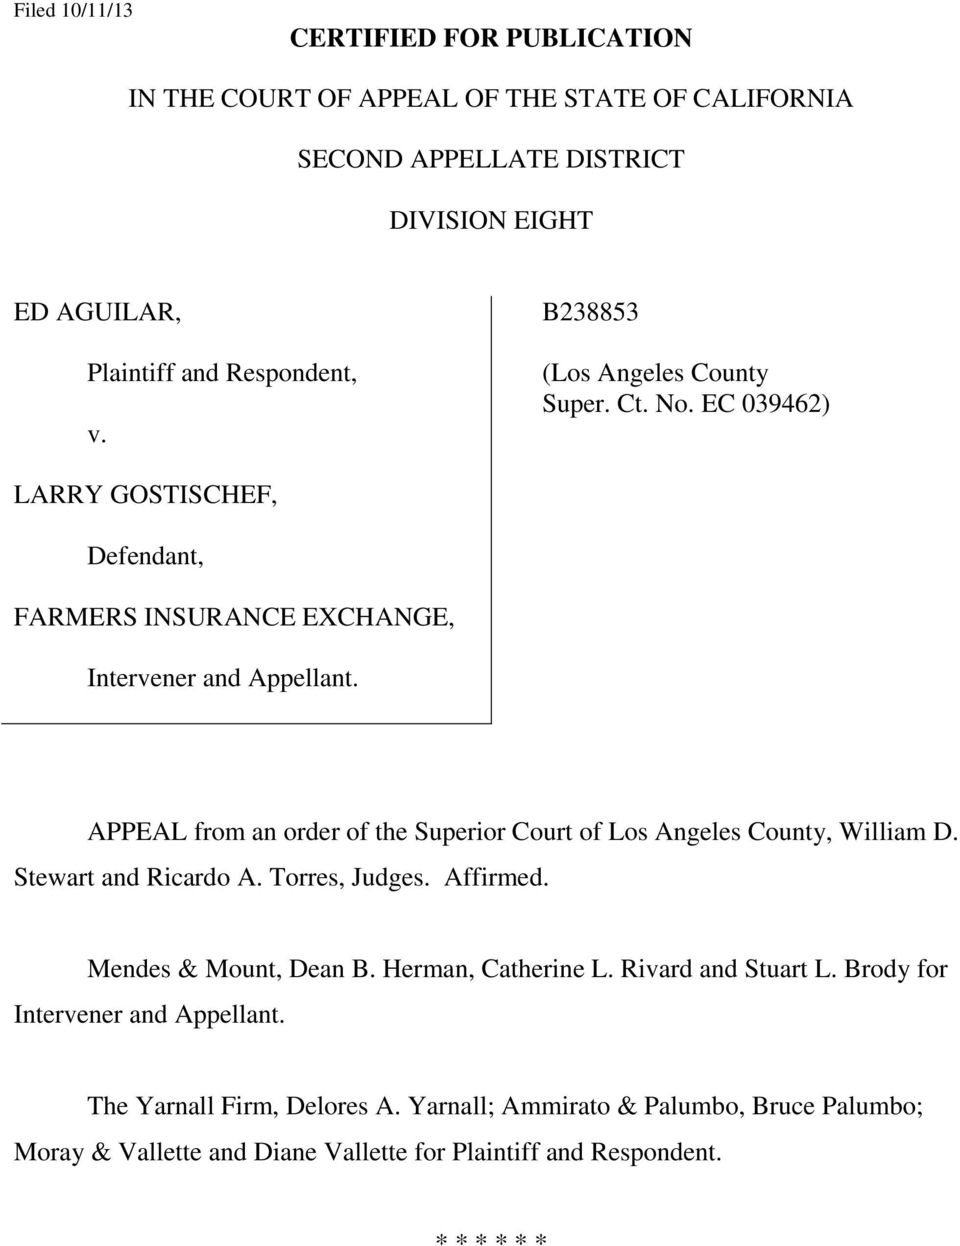 APPEAL from an order of the Superior Court of Los Angeles County, William D. Stewart and Ricardo A. Torres, Judges. Affirmed. Mendes & Mount, Dean B. Herman, Catherine L.